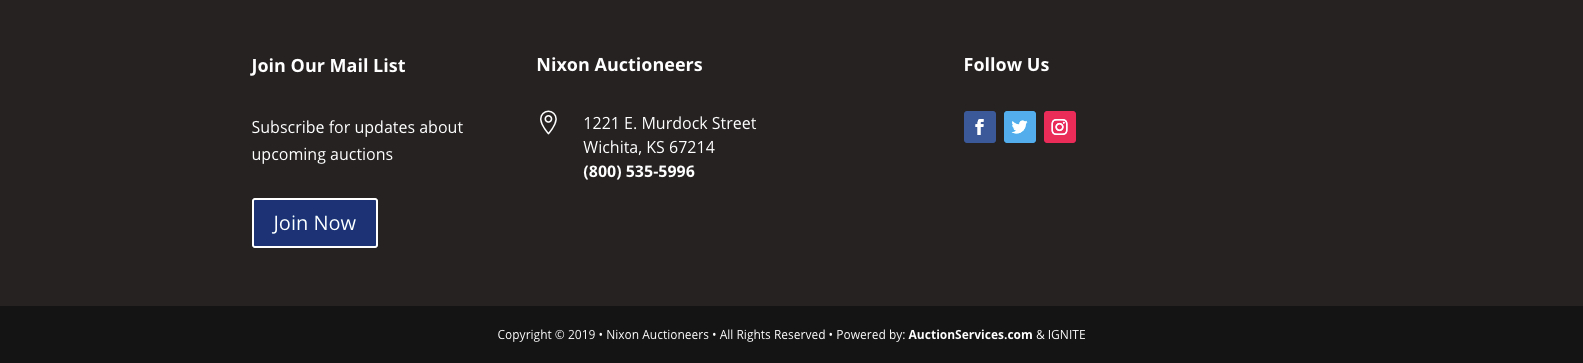 nx Auctions